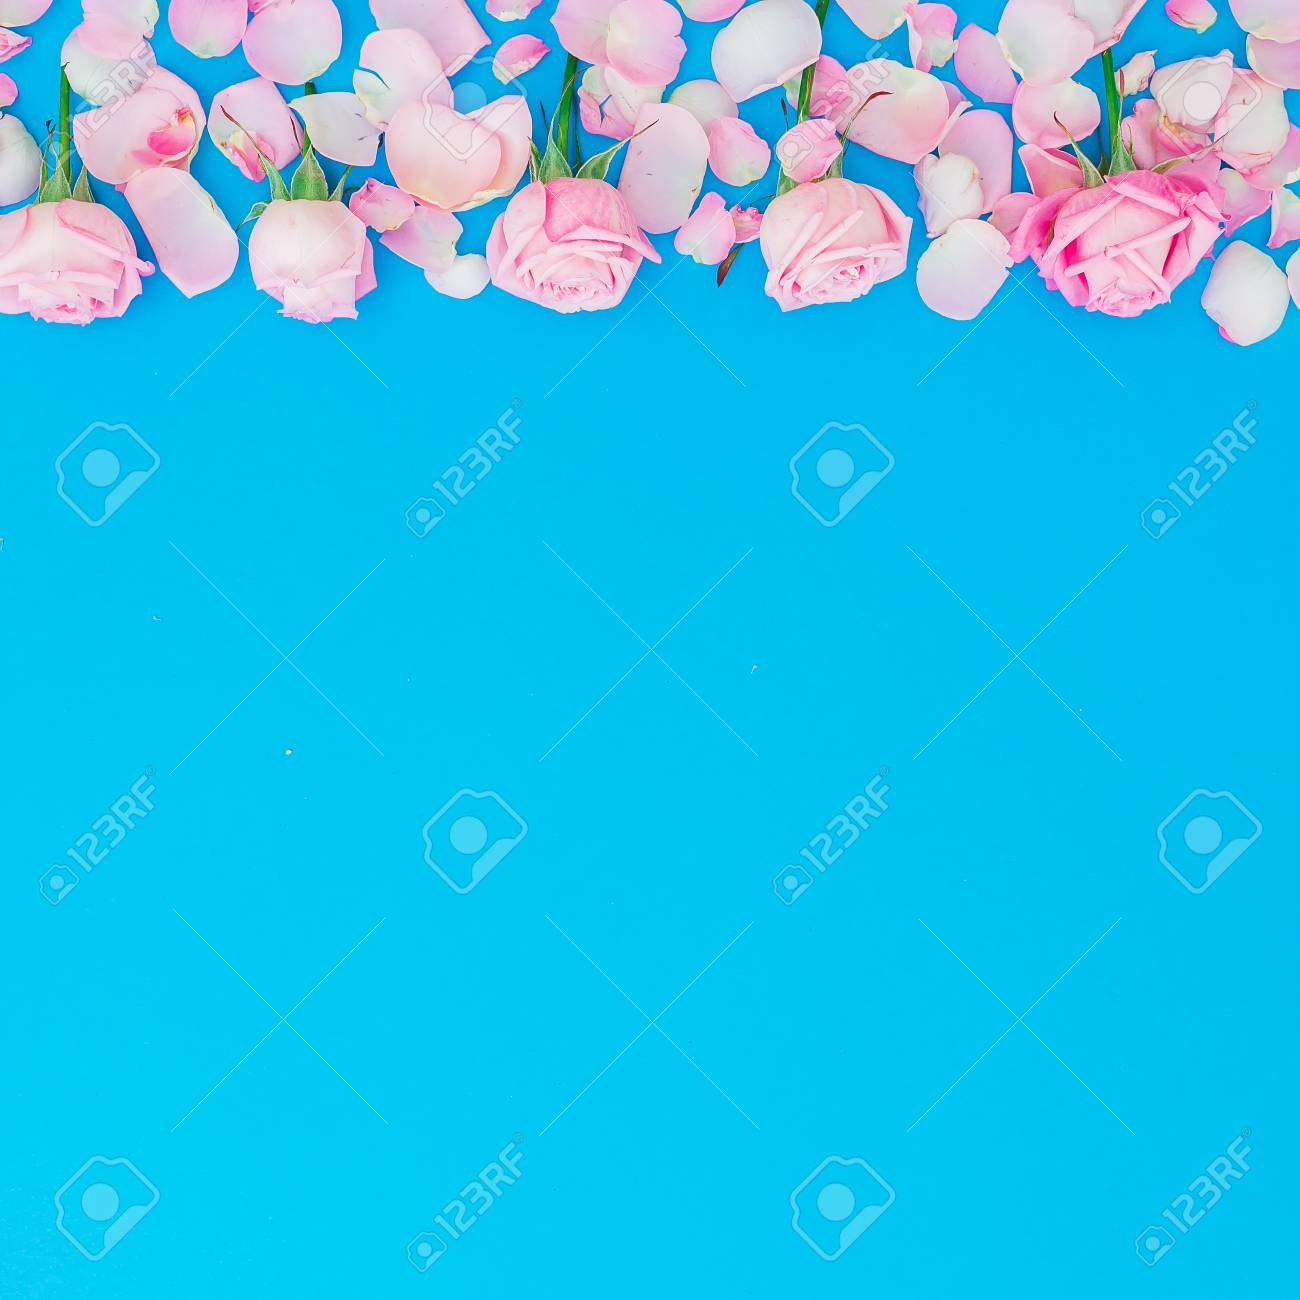 15331e3117473 Floral Frame Of Roses Buds And Petals On Blue Background. Flat ...